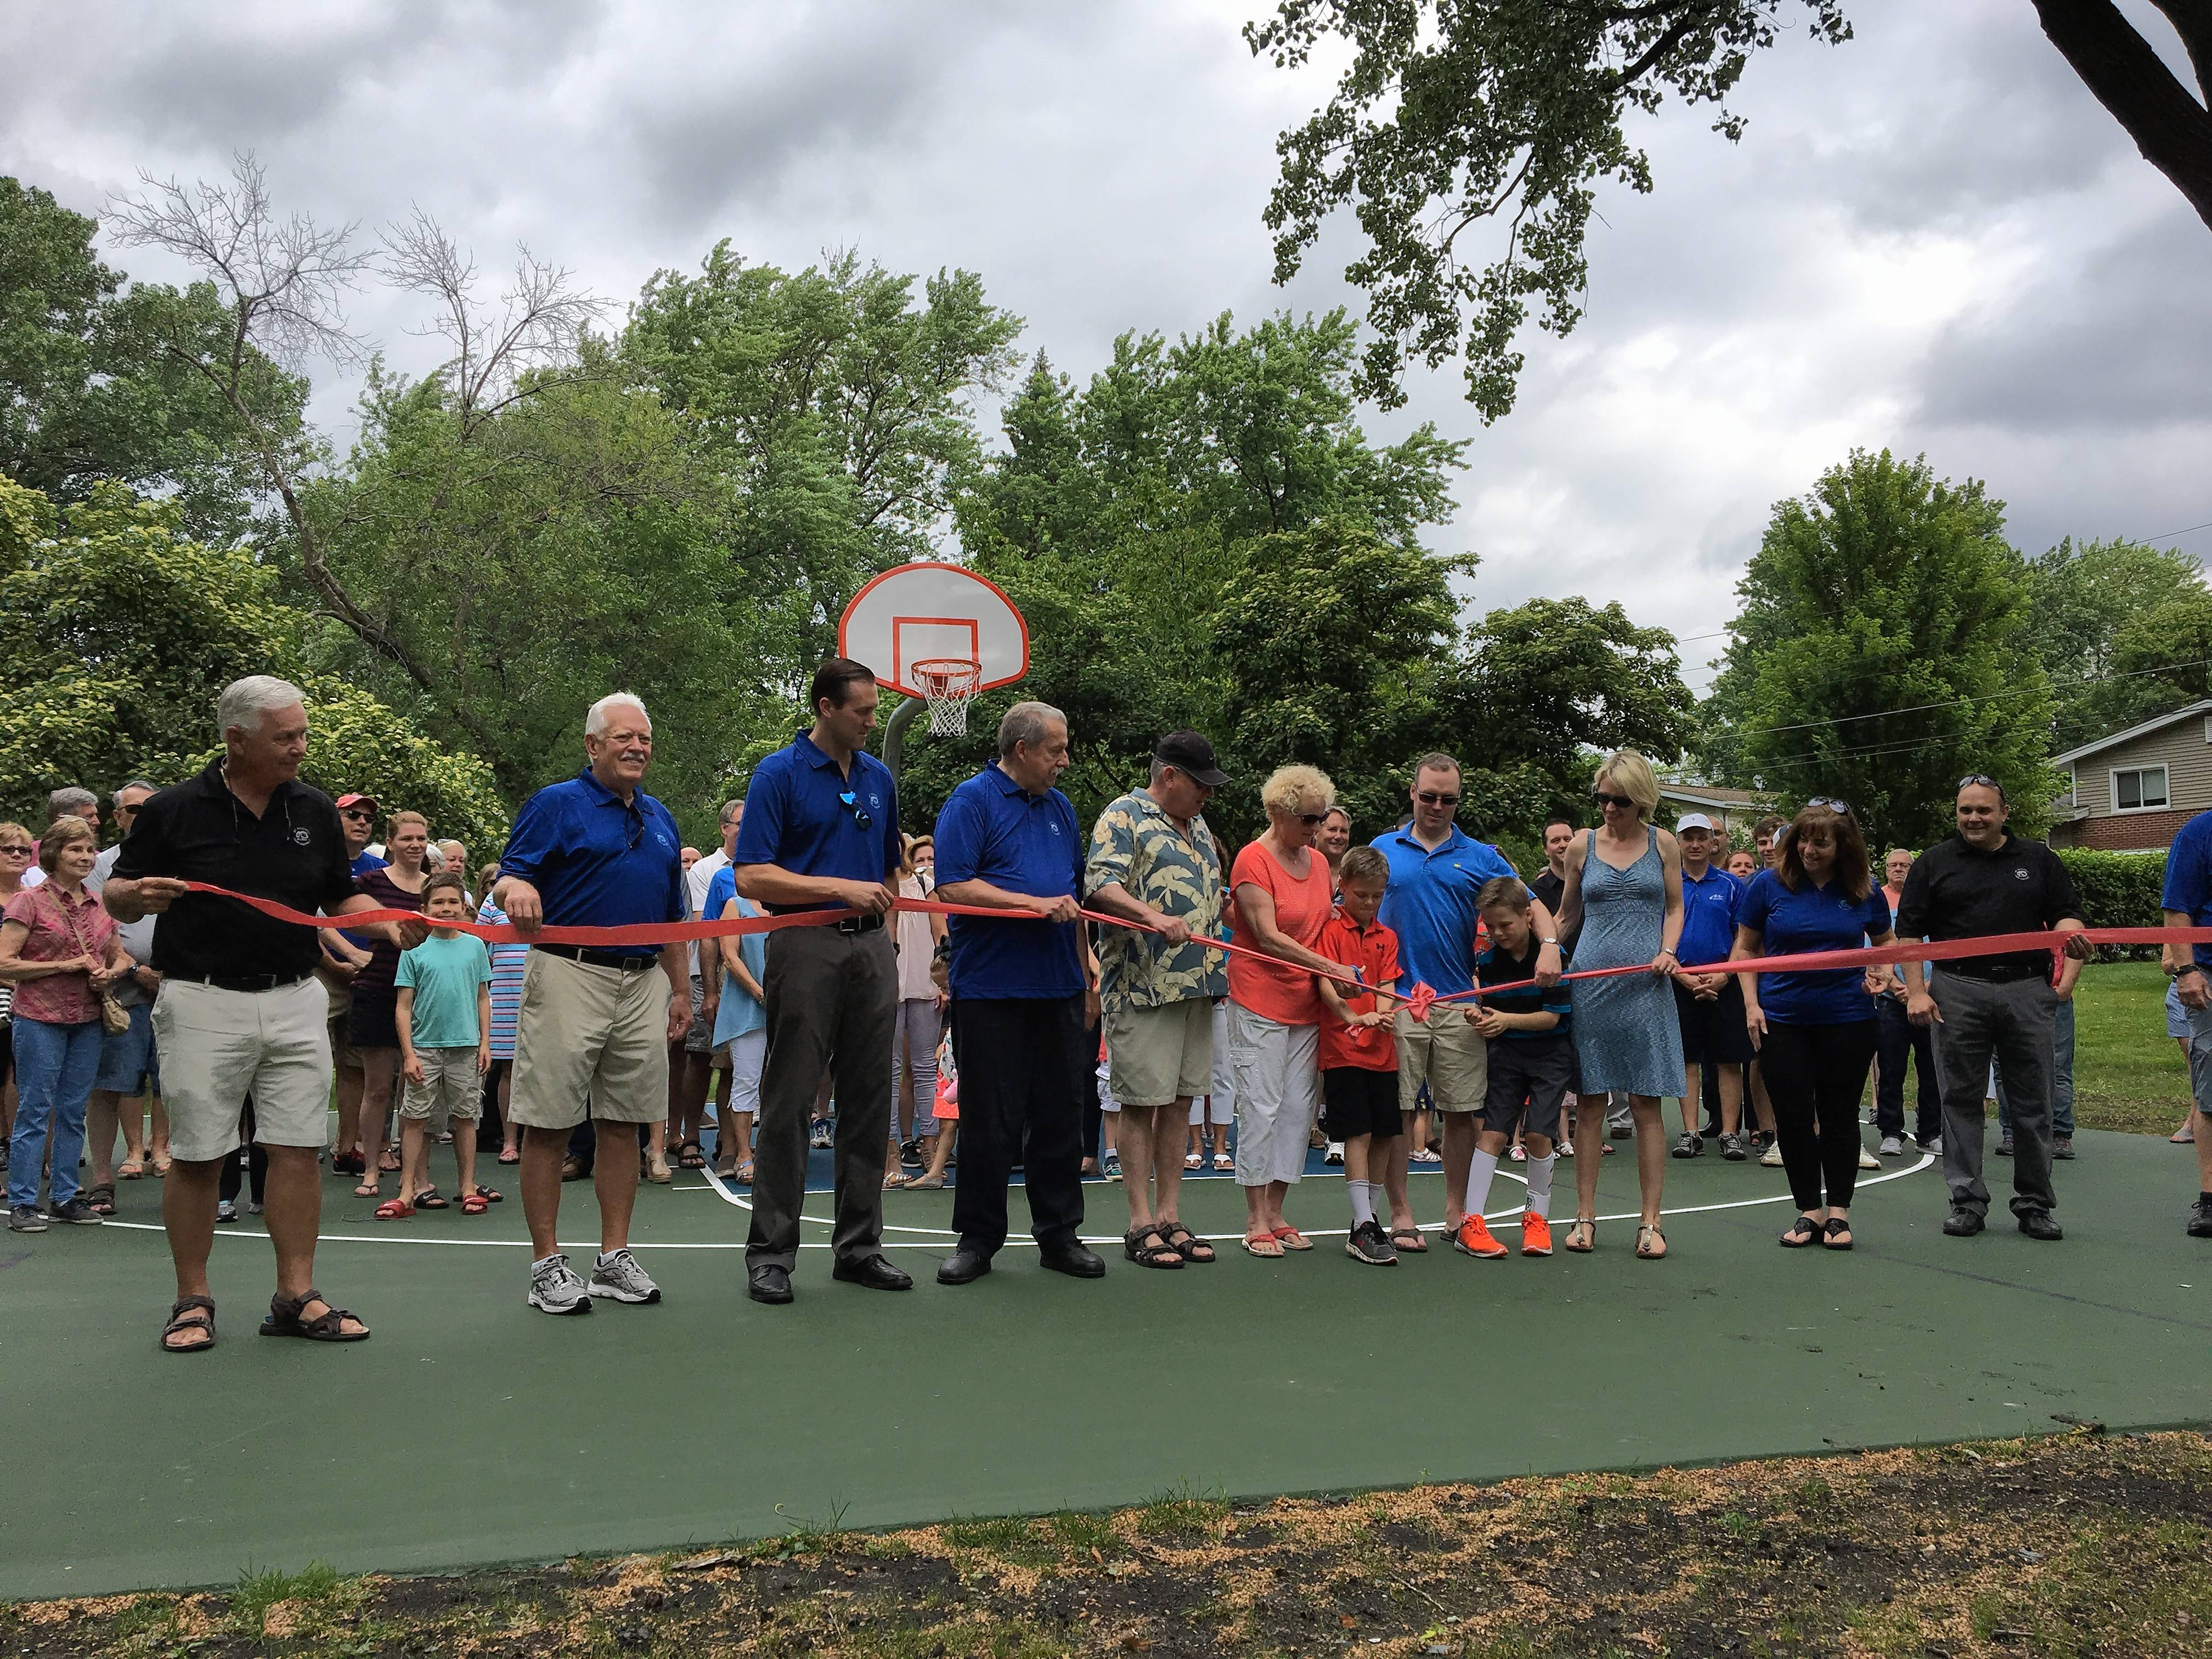 Bruce and Marta Gillilan of Mount Prospect, center, donated $15,000 toward the building of this basketball court in their neighborhood We-Go Park. It was dedicated Saturday in memory of their daughter Lindsay. Lindsay's sister Kara and her husband Colin Murphy of Wheaton, and their twin sons, Aidan and Quinn, 10, were also present.